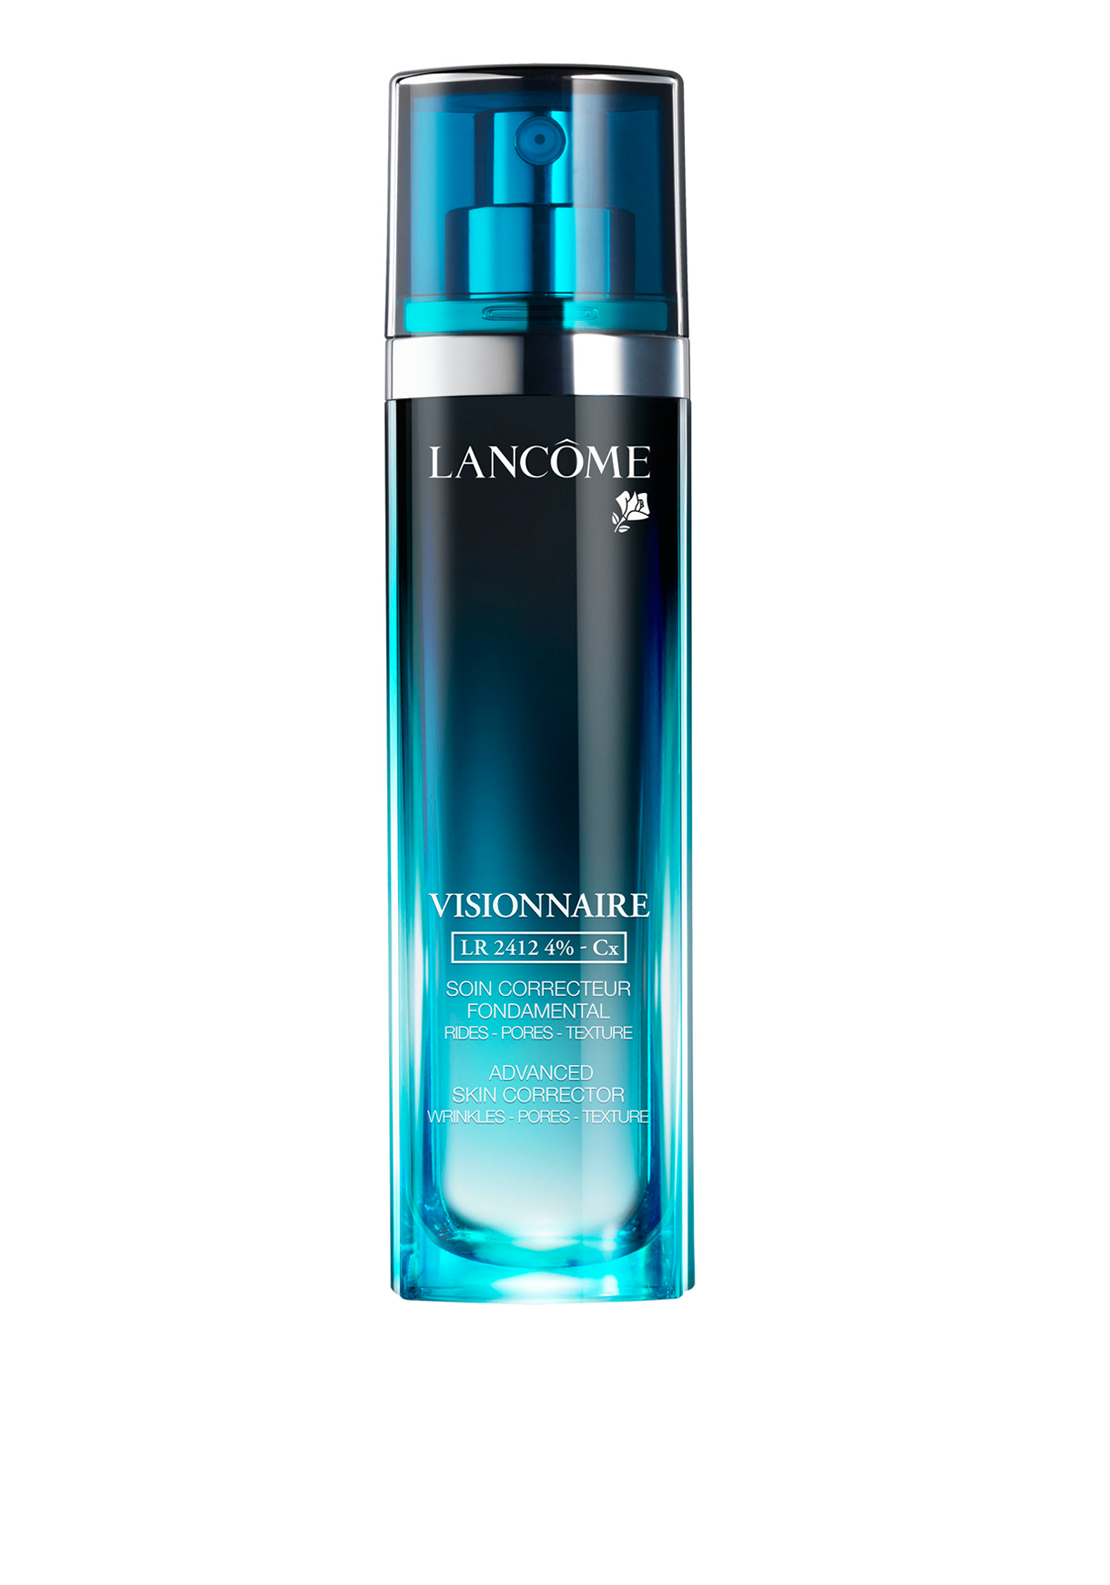 Lancome Visionnaire Advanced Skin Corrector, 50ml